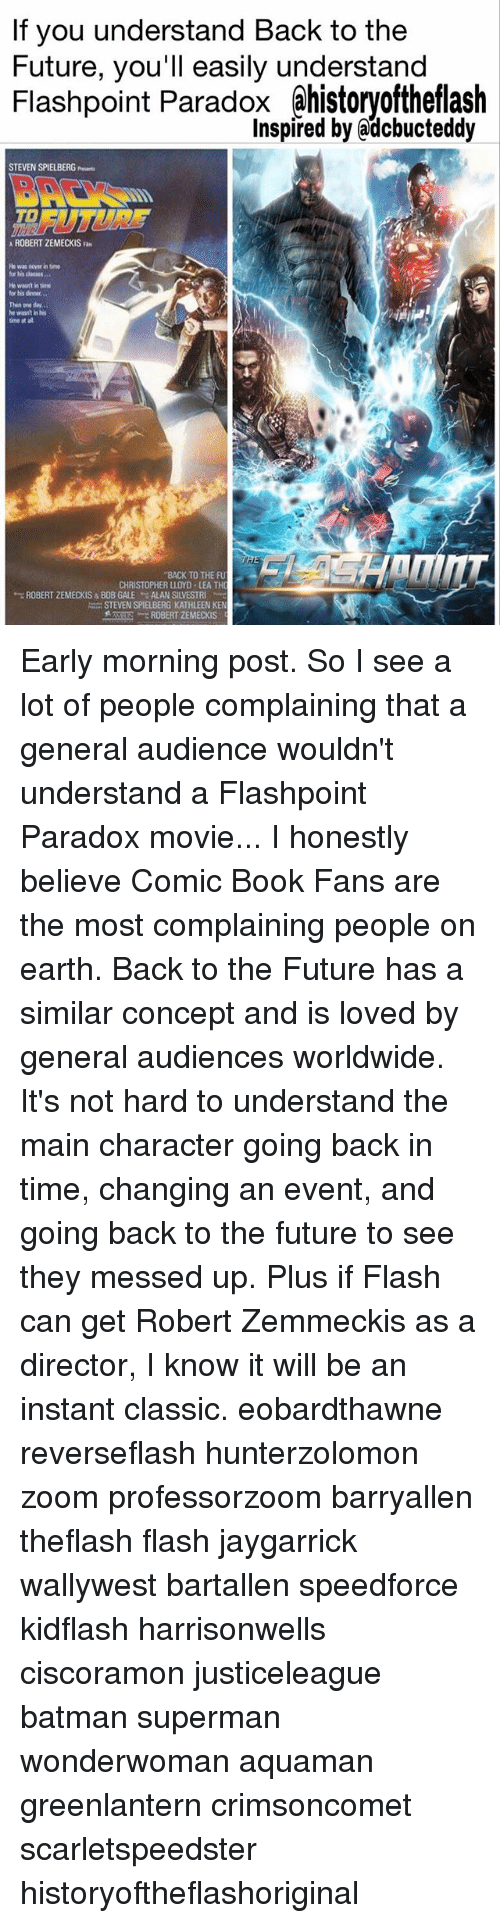 Back to the Future, Batman, and Future: If you understand Back to the  Future, you'll easily understand  Flashpoint Paradox ahistoryoftheflash  Inspired by @dcbucteddy  STEVEN SPIELBERG  FUTURE  to  ROBERT ZEMECKIS Fan  He was never in time  for his classes  He wan't in tine  for his denner  Then one day.  he wisnt in his  time at al  BACK TO THE FU  CHRISTOPHER LLOYD LEA TH  ROBERT ZEMECKIS & BOB GALE  ALAN SILVESTRI  ,  Am: STEVEN SPIELBERG KATHLEEN KE Early morning post. So I see a lot of people complaining that a general audience wouldn't understand a Flashpoint Paradox movie... I honestly believe Comic Book Fans are the most complaining people on earth. Back to the Future has a similar concept and is loved by general audiences worldwide. It's not hard to understand the main character going back in time, changing an event, and going back to the future to see they messed up. Plus if Flash can get Robert Zemmeckis as a director, I know it will be an instant classic. eobardthawne reverseflash hunterzolomon zoom professorzoom barryallen theflash flash jaygarrick wallywest bartallen speedforce kidflash harrisonwells ciscoramon justiceleague batman superman wonderwoman aquaman greenlantern crimsoncomet scarletspeedster historyoftheflashoriginal